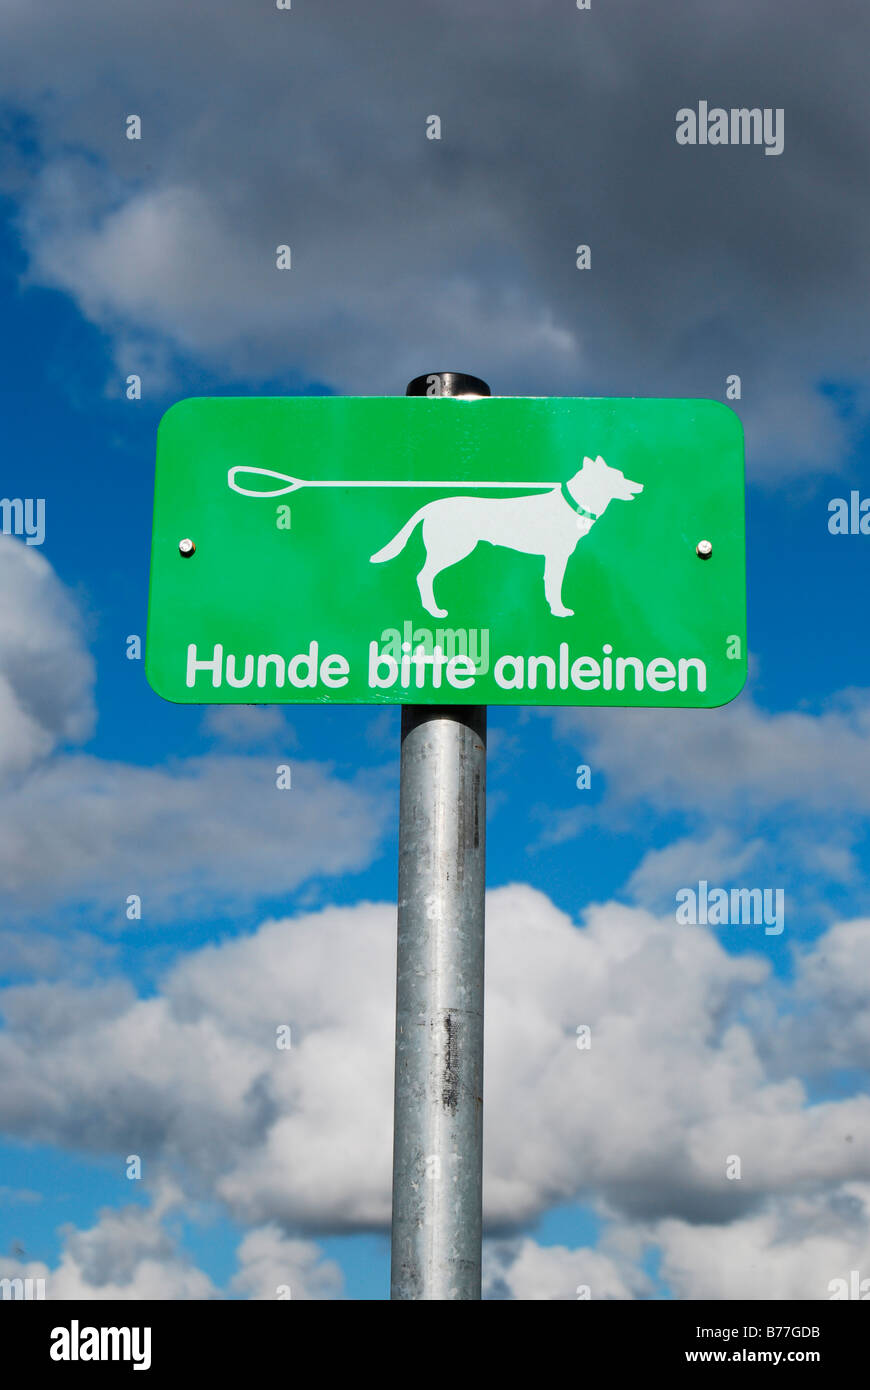 Sign 'Hunde bitte anleinen' jutting out into the sky - Stock Image